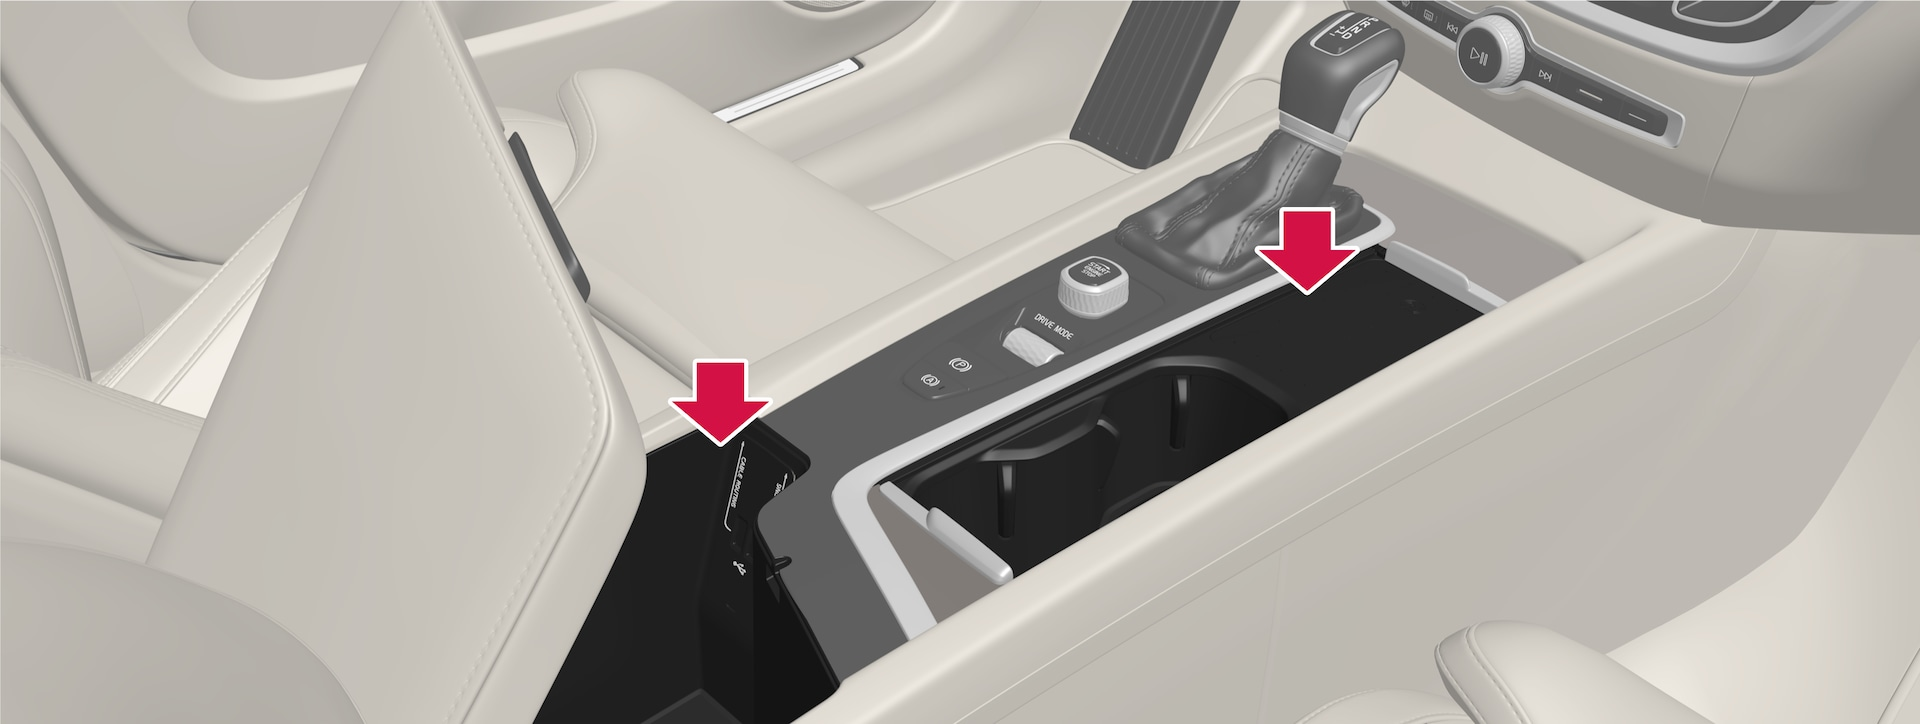 P5-2046-XC60-Overview tunnel console